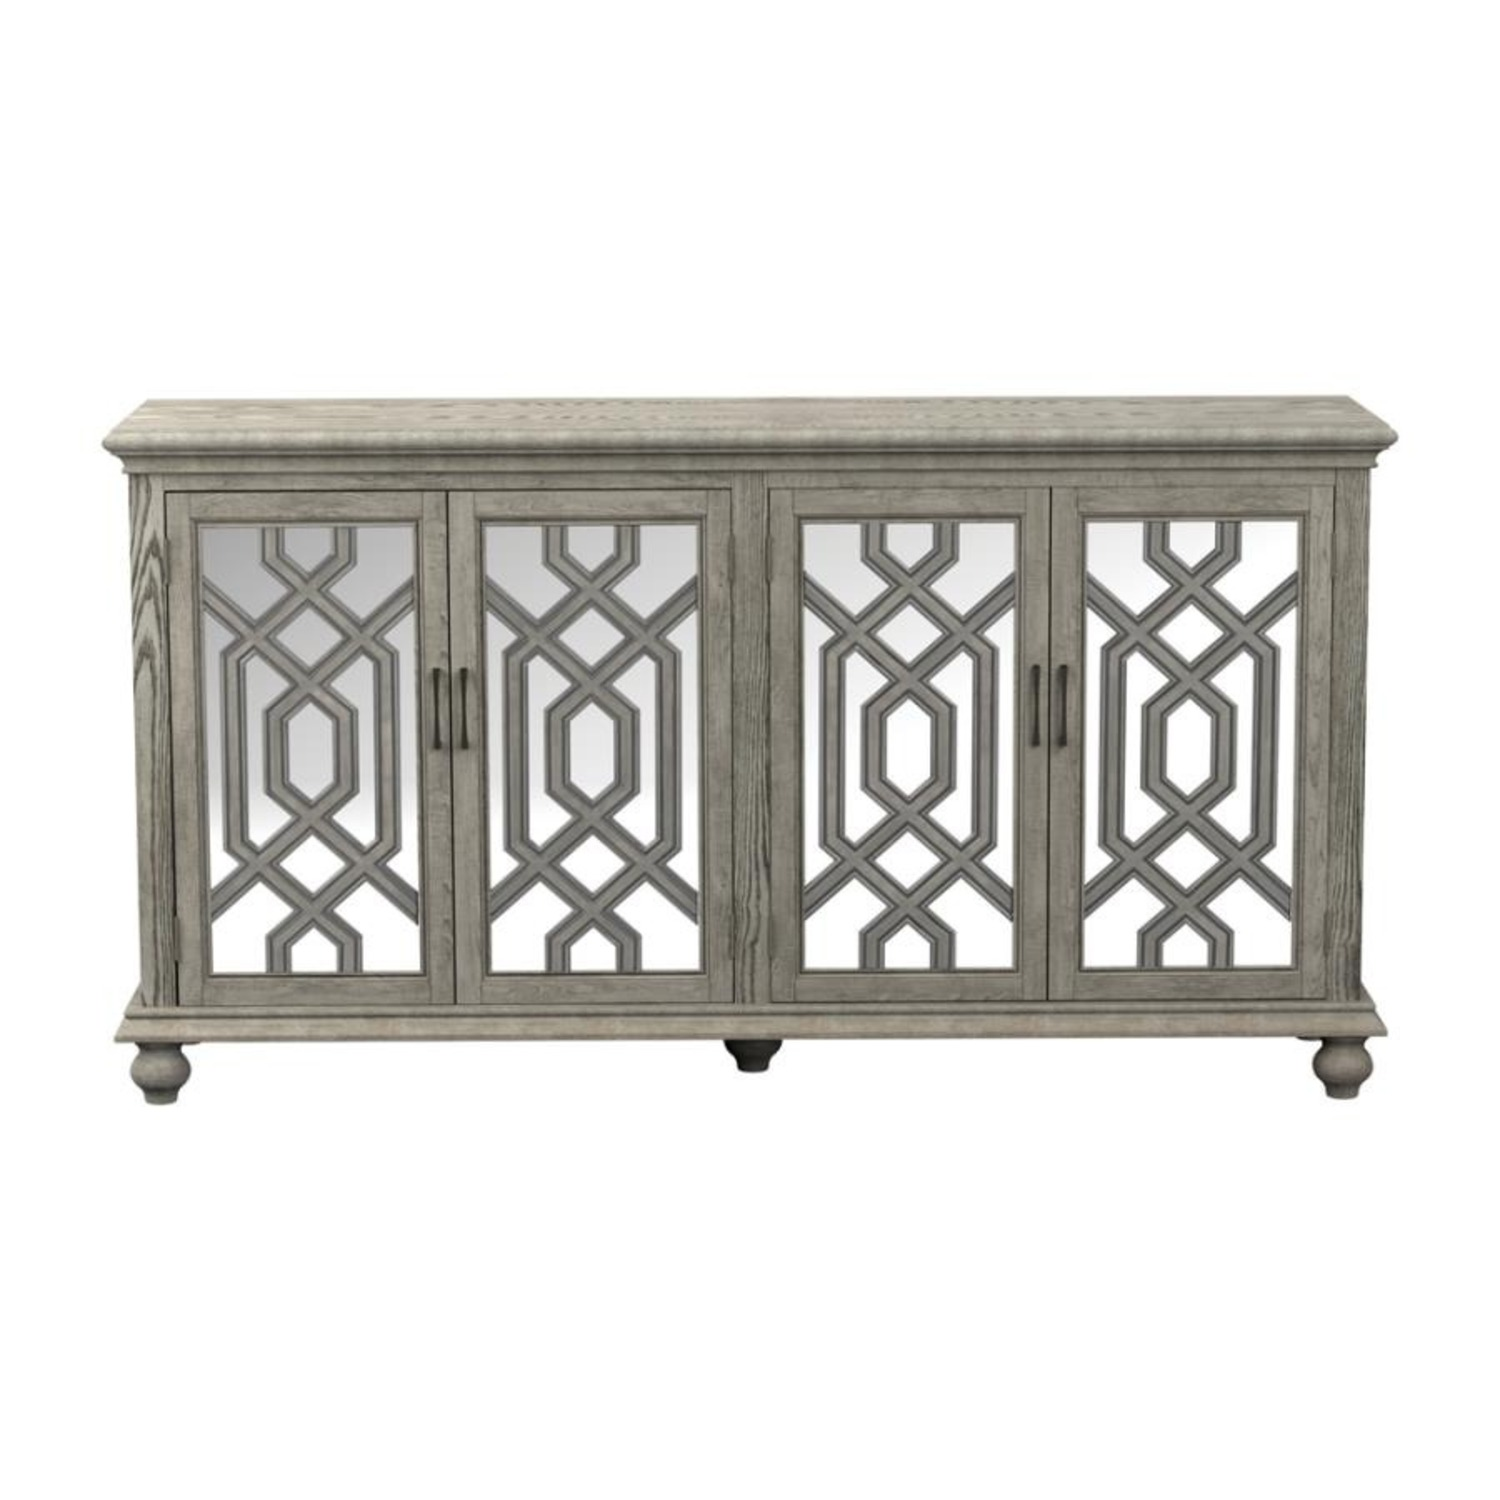 Accent Cabinet In Antique White W/ Bronze Details - image-2